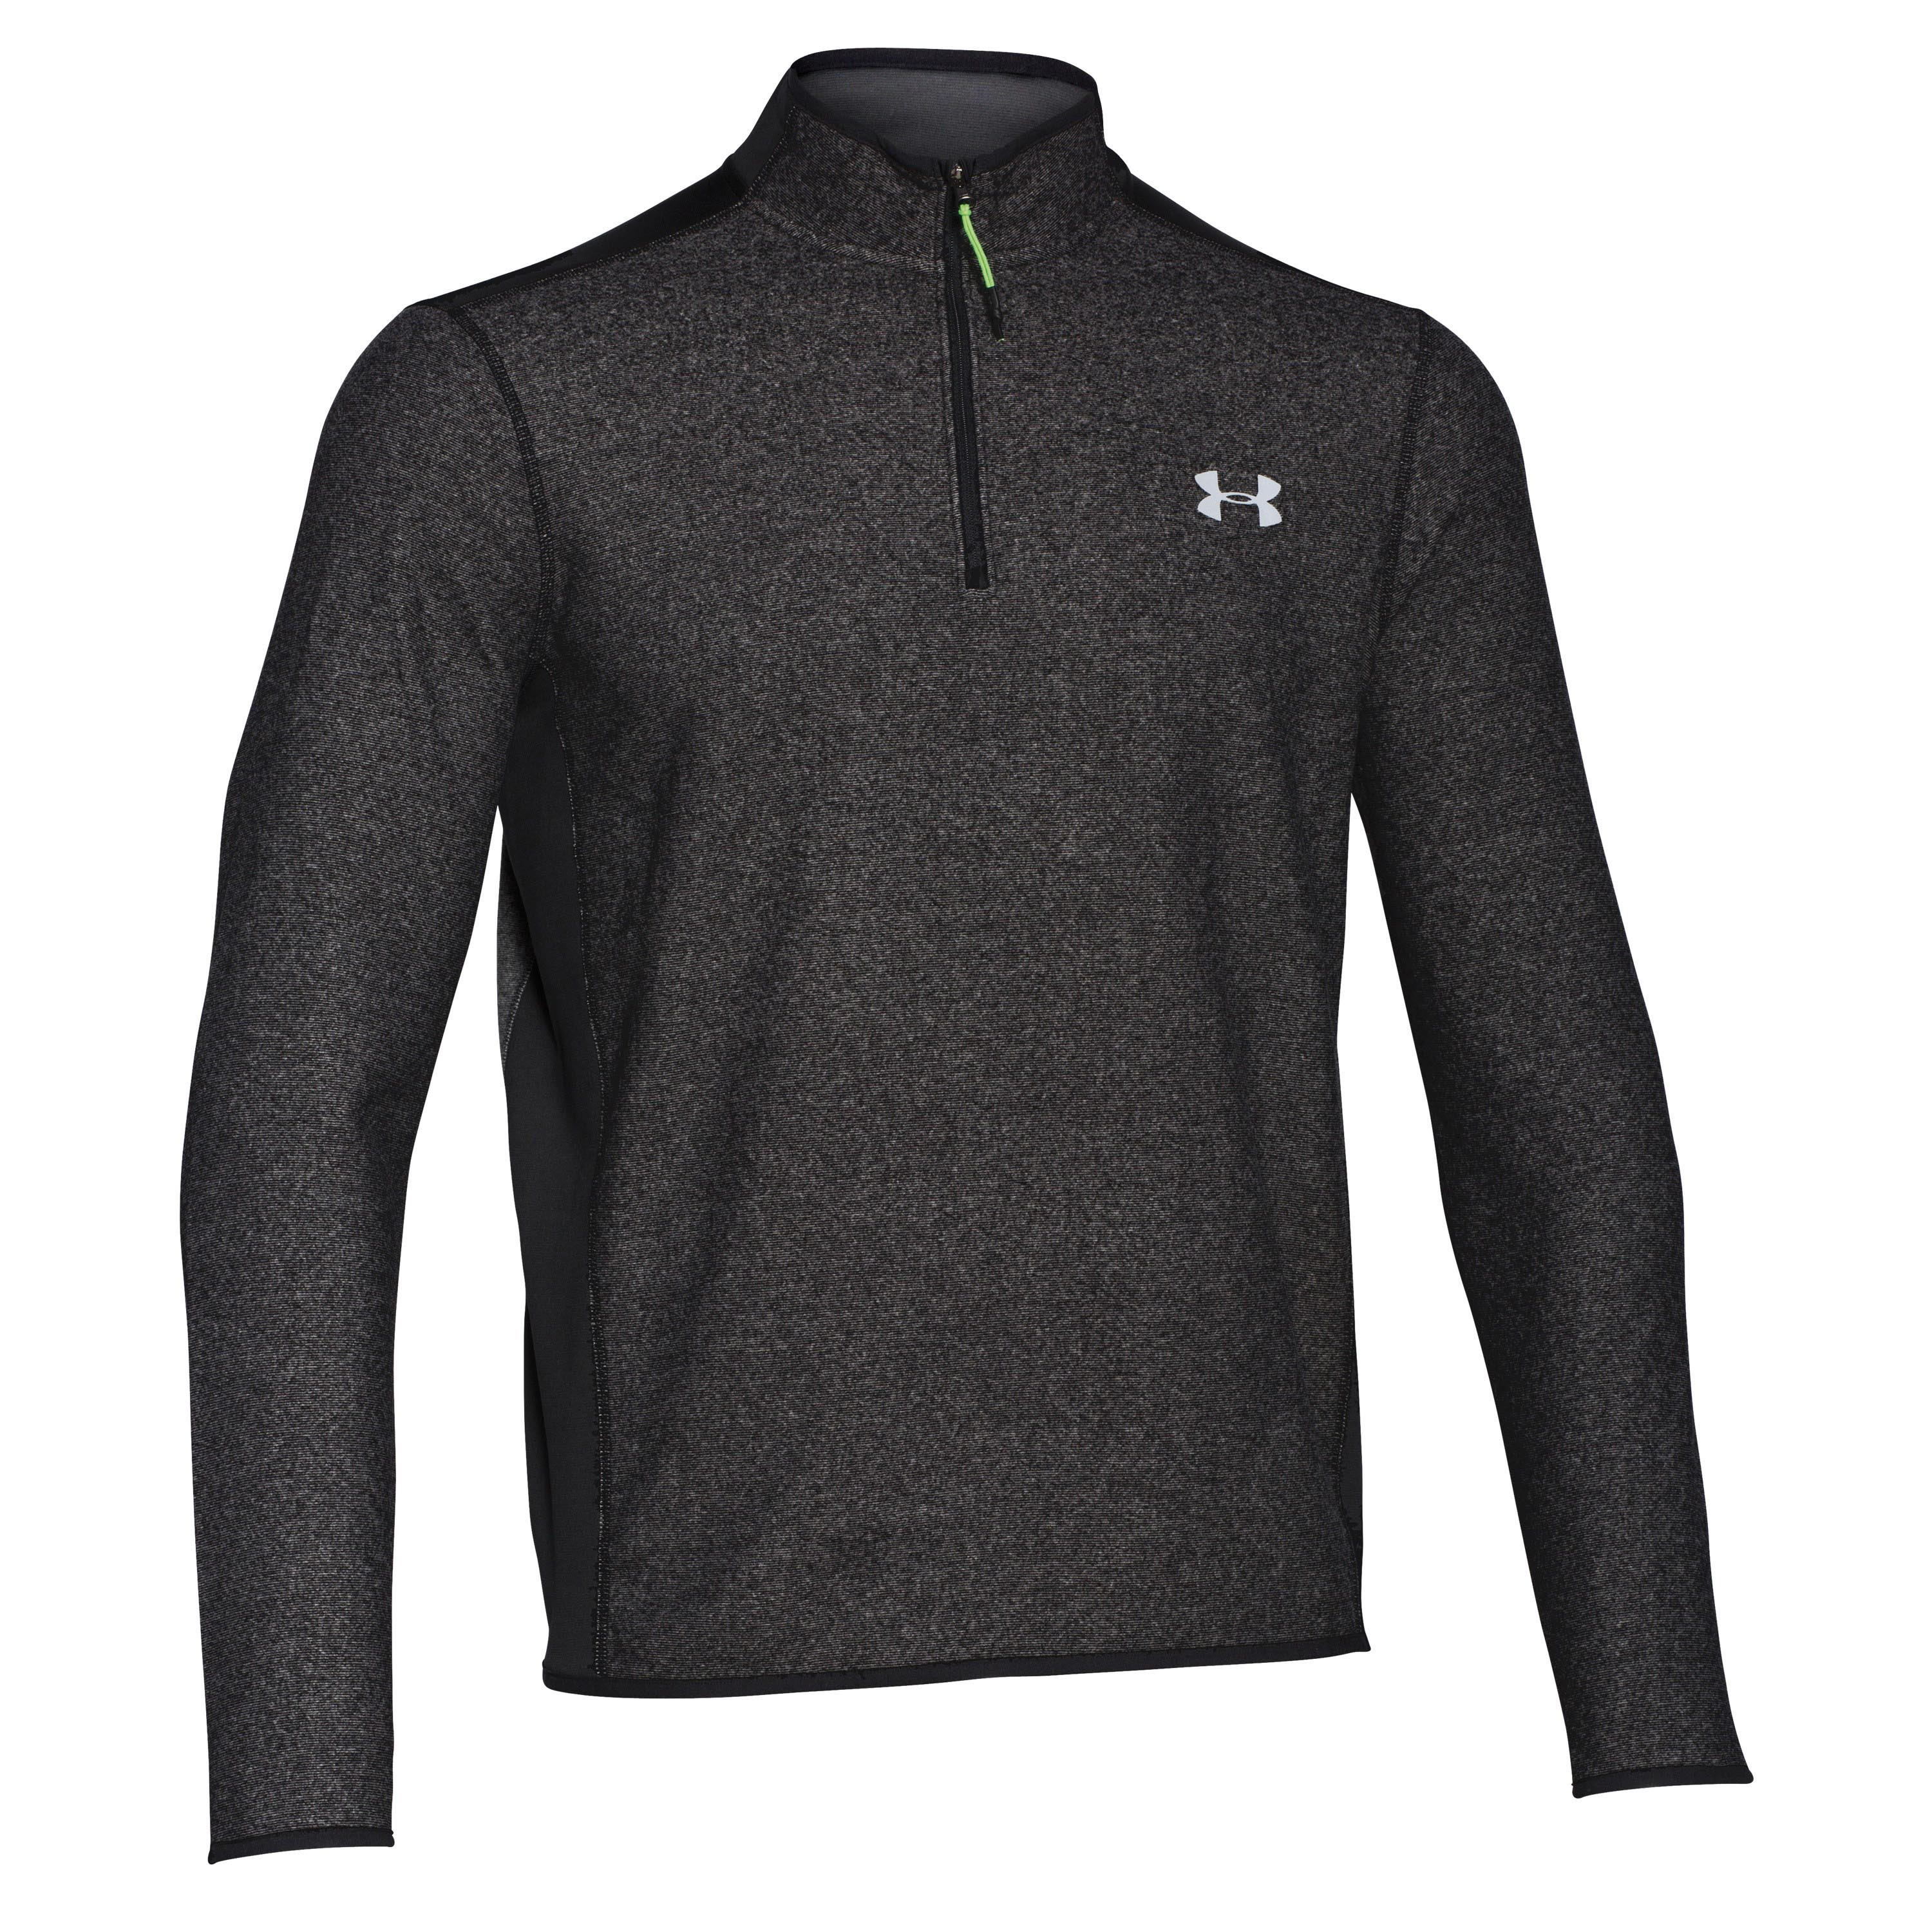 Under Armour Langarmshirt CGI Performance 1/4 Zip schwarz